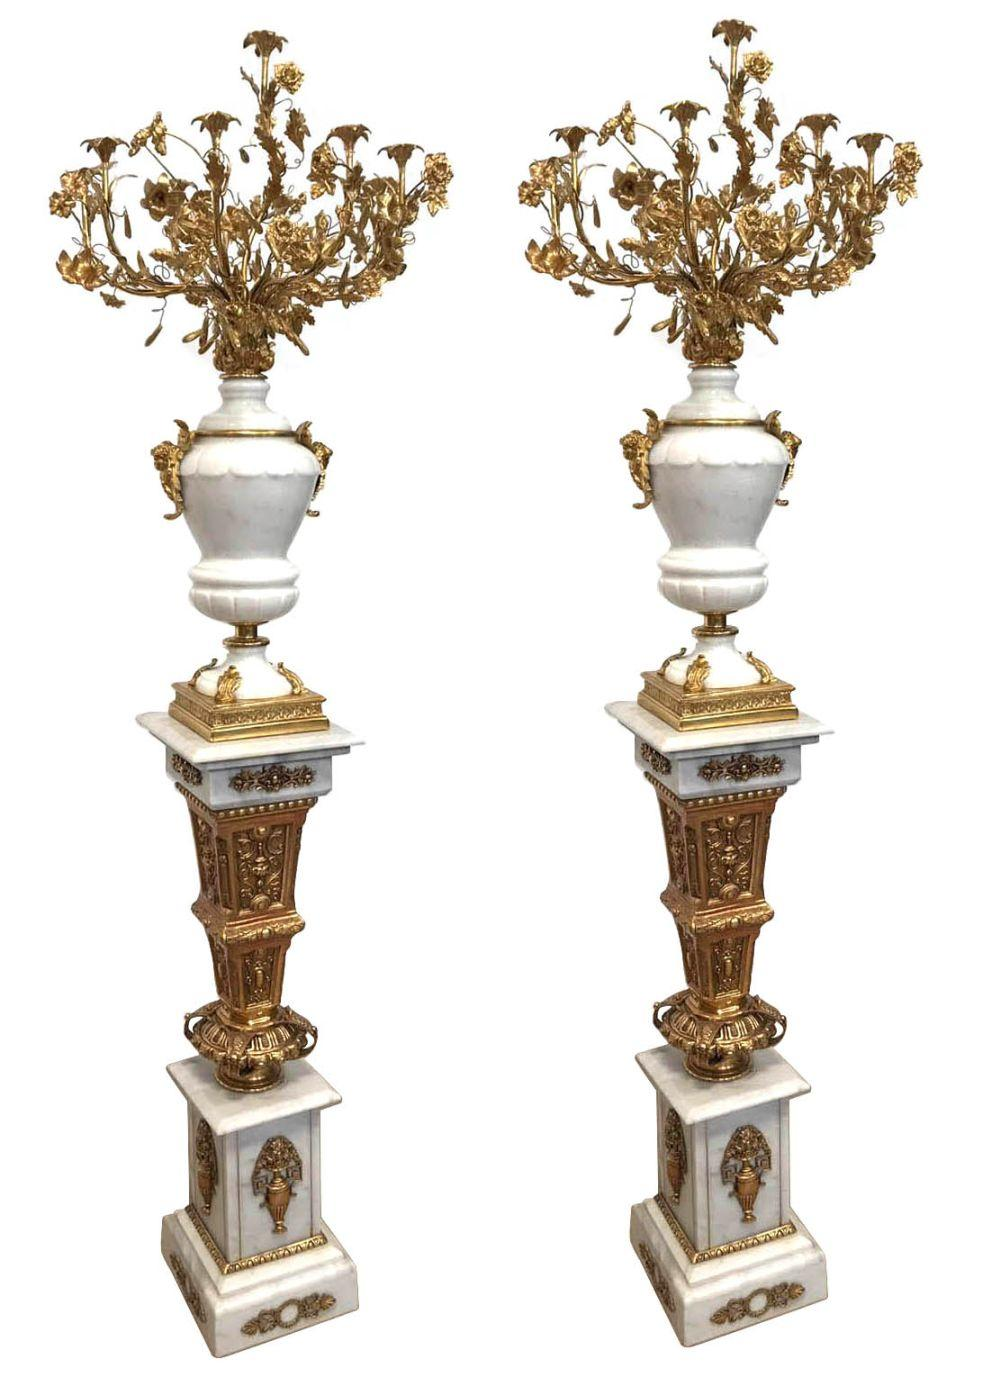 Pair of marble and bronze candelabras